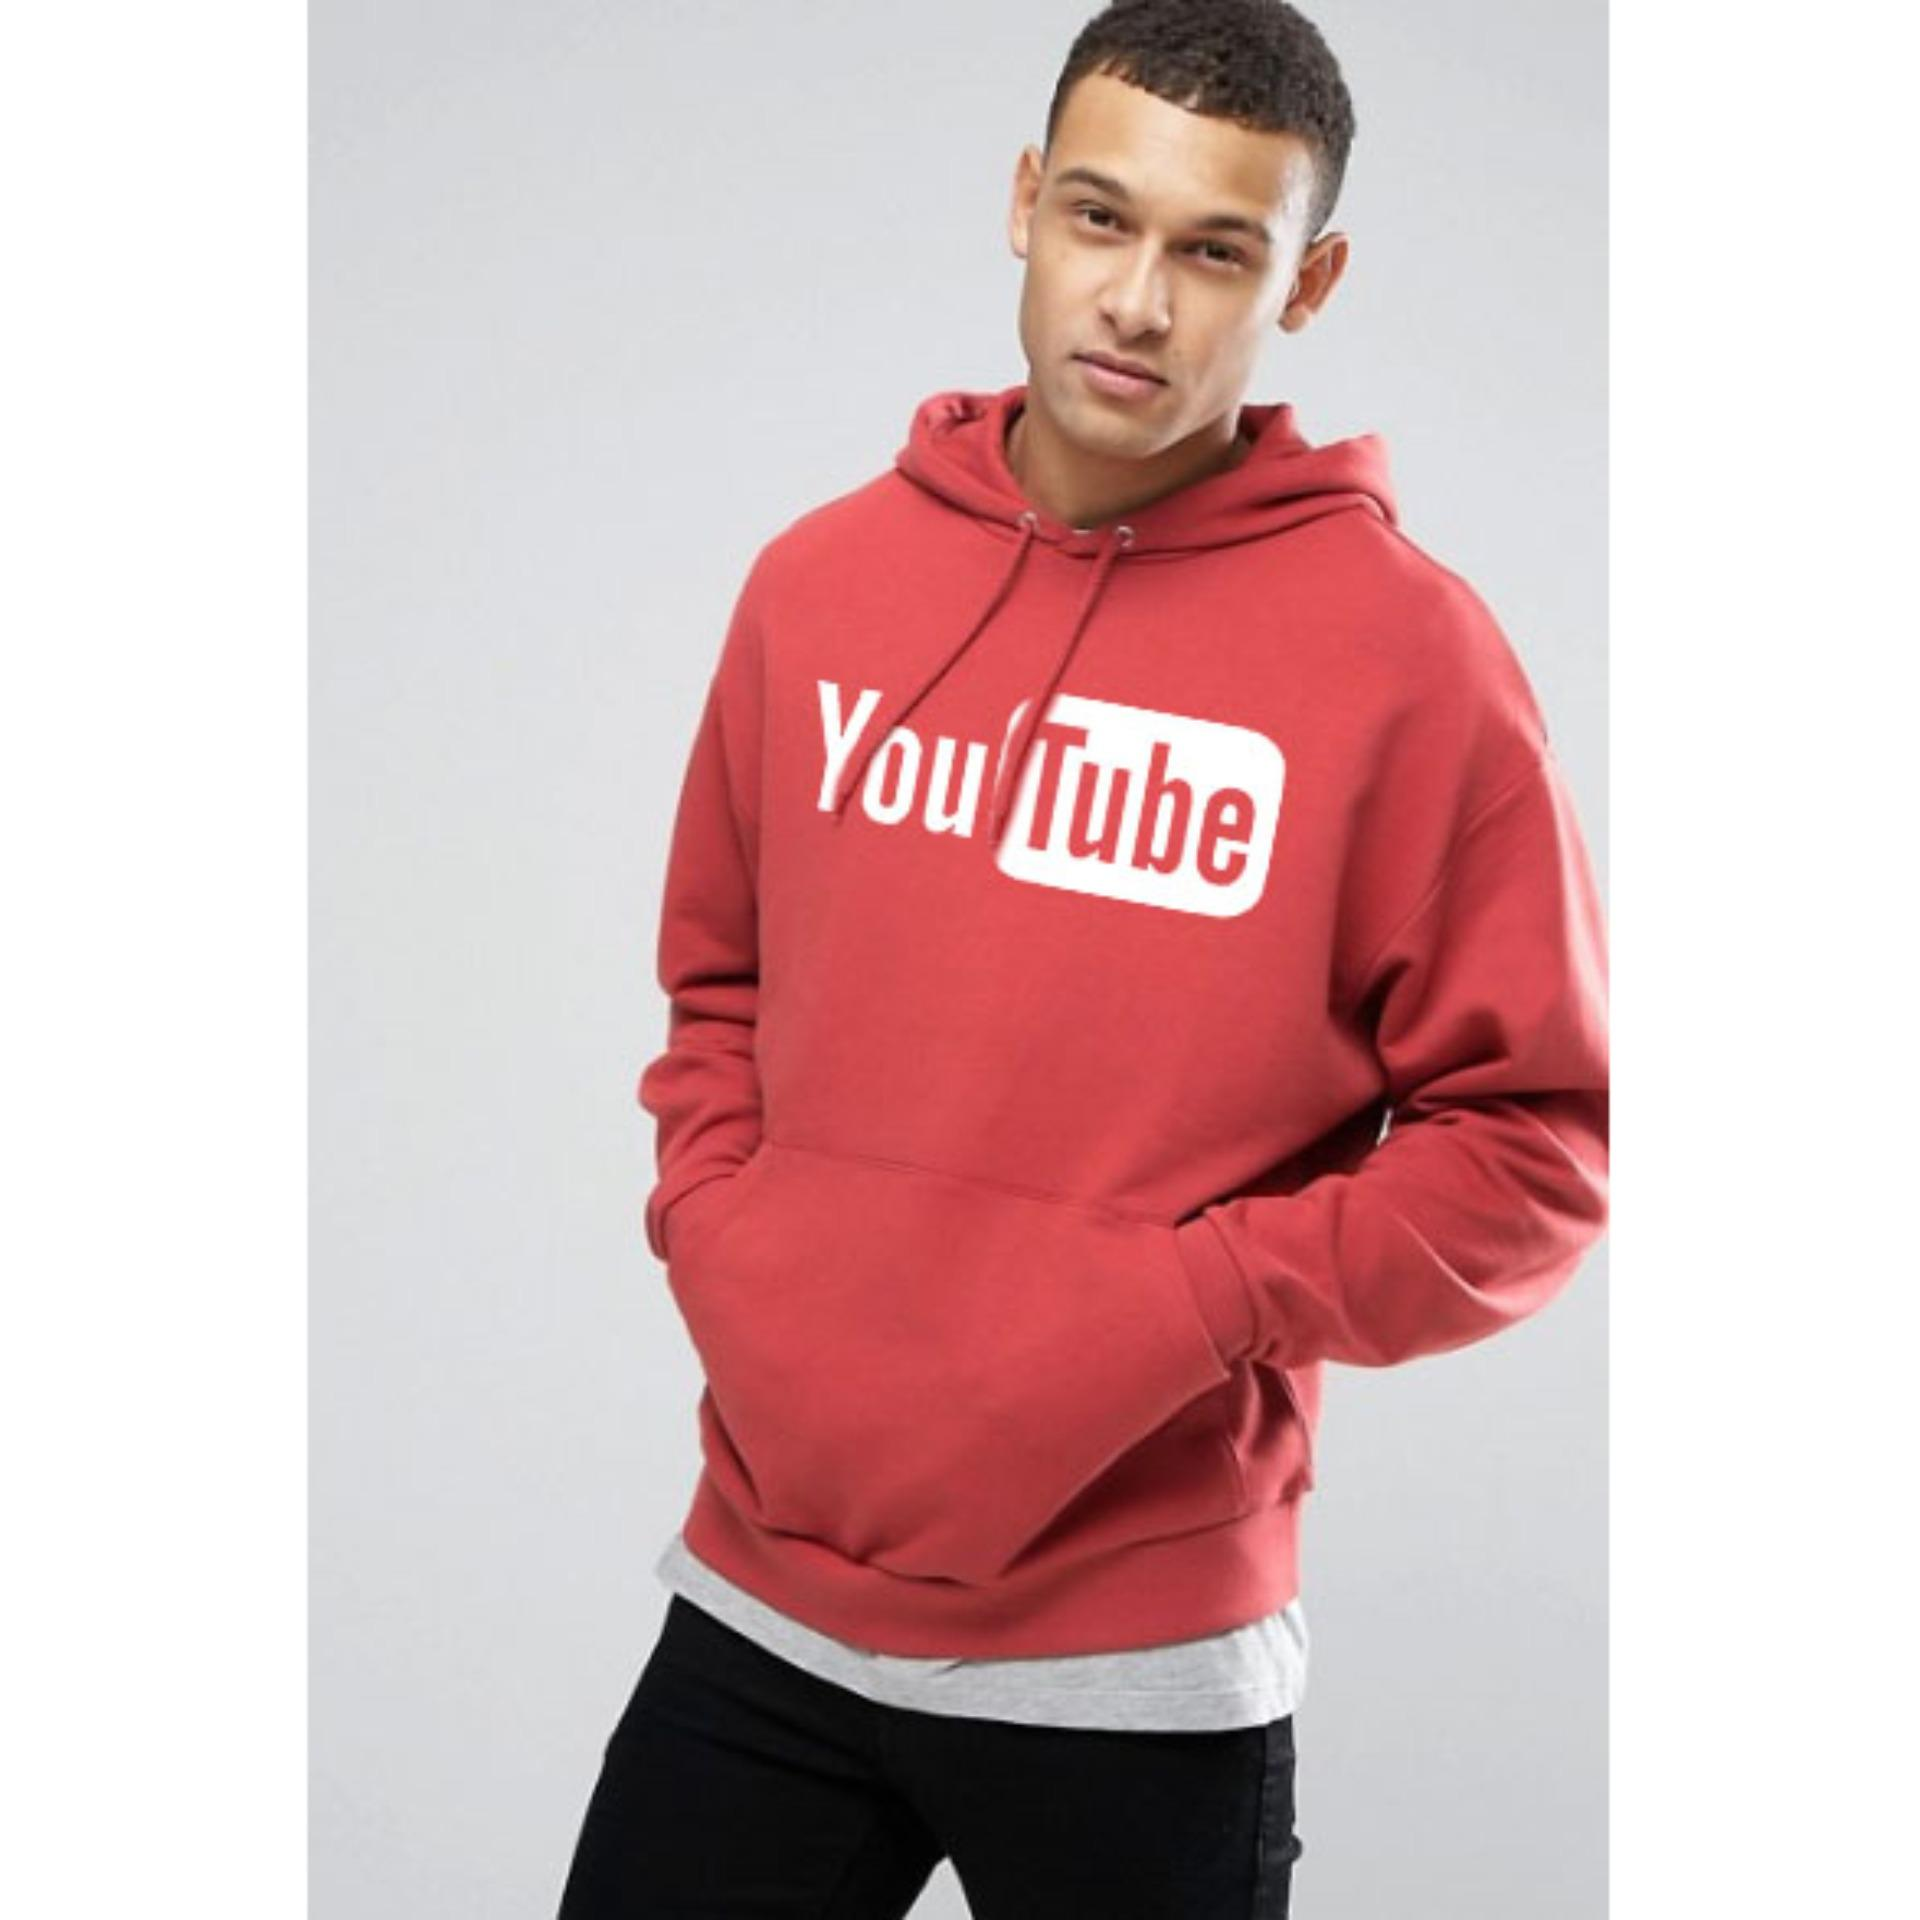 Diskon Produk Just Cloth Jaket Pullover Hoodie Social Media Youtube